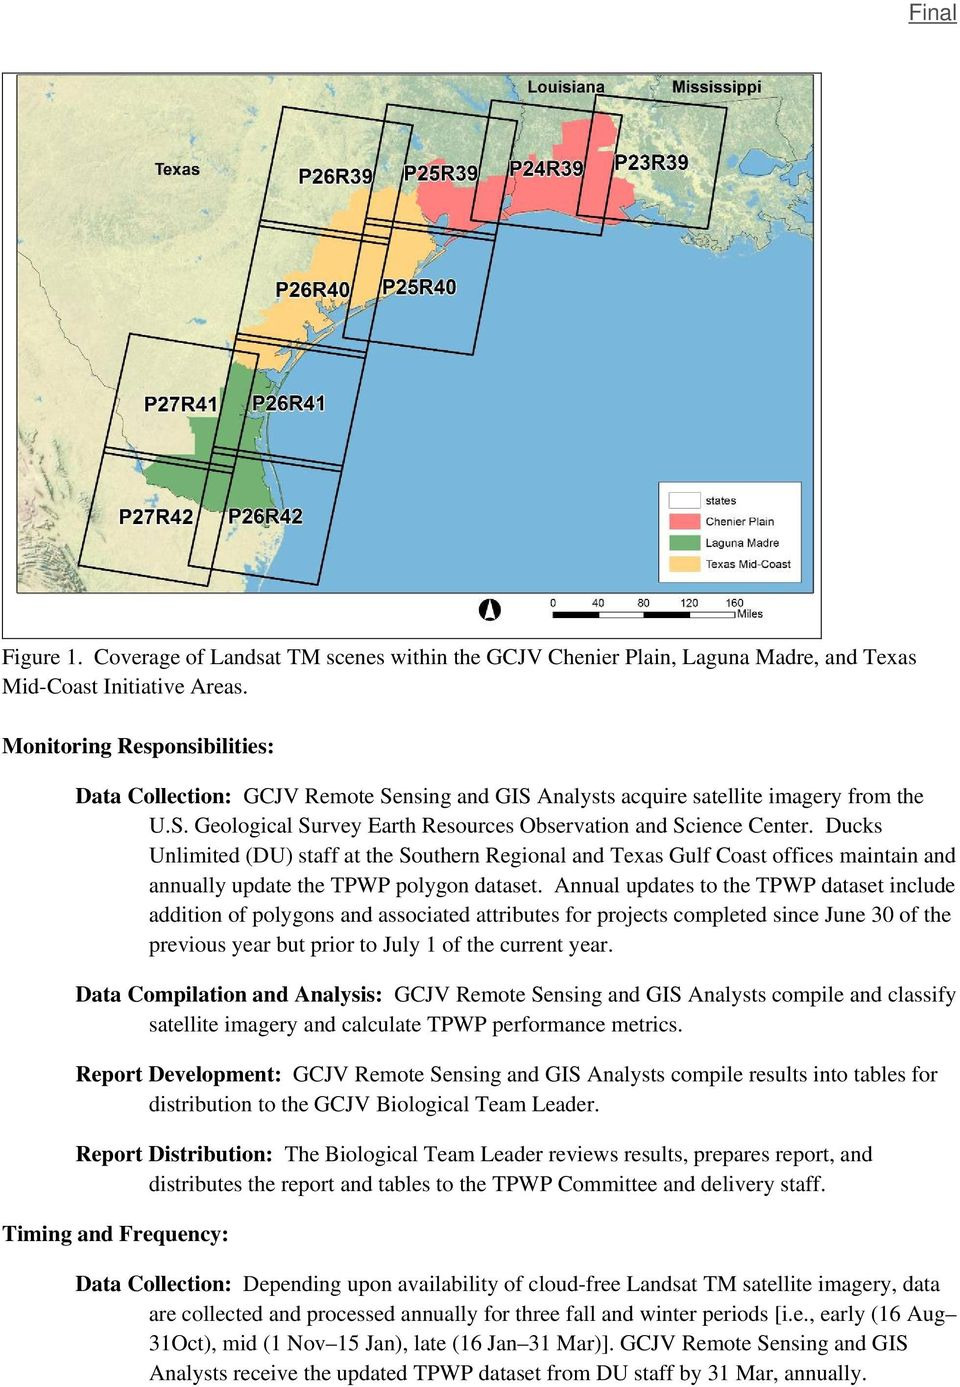 Ducks Unlimited (DU) staff at the Southern Regional and Texas Gulf Coast offices maintain and annually update the TPWP polygon dataset.